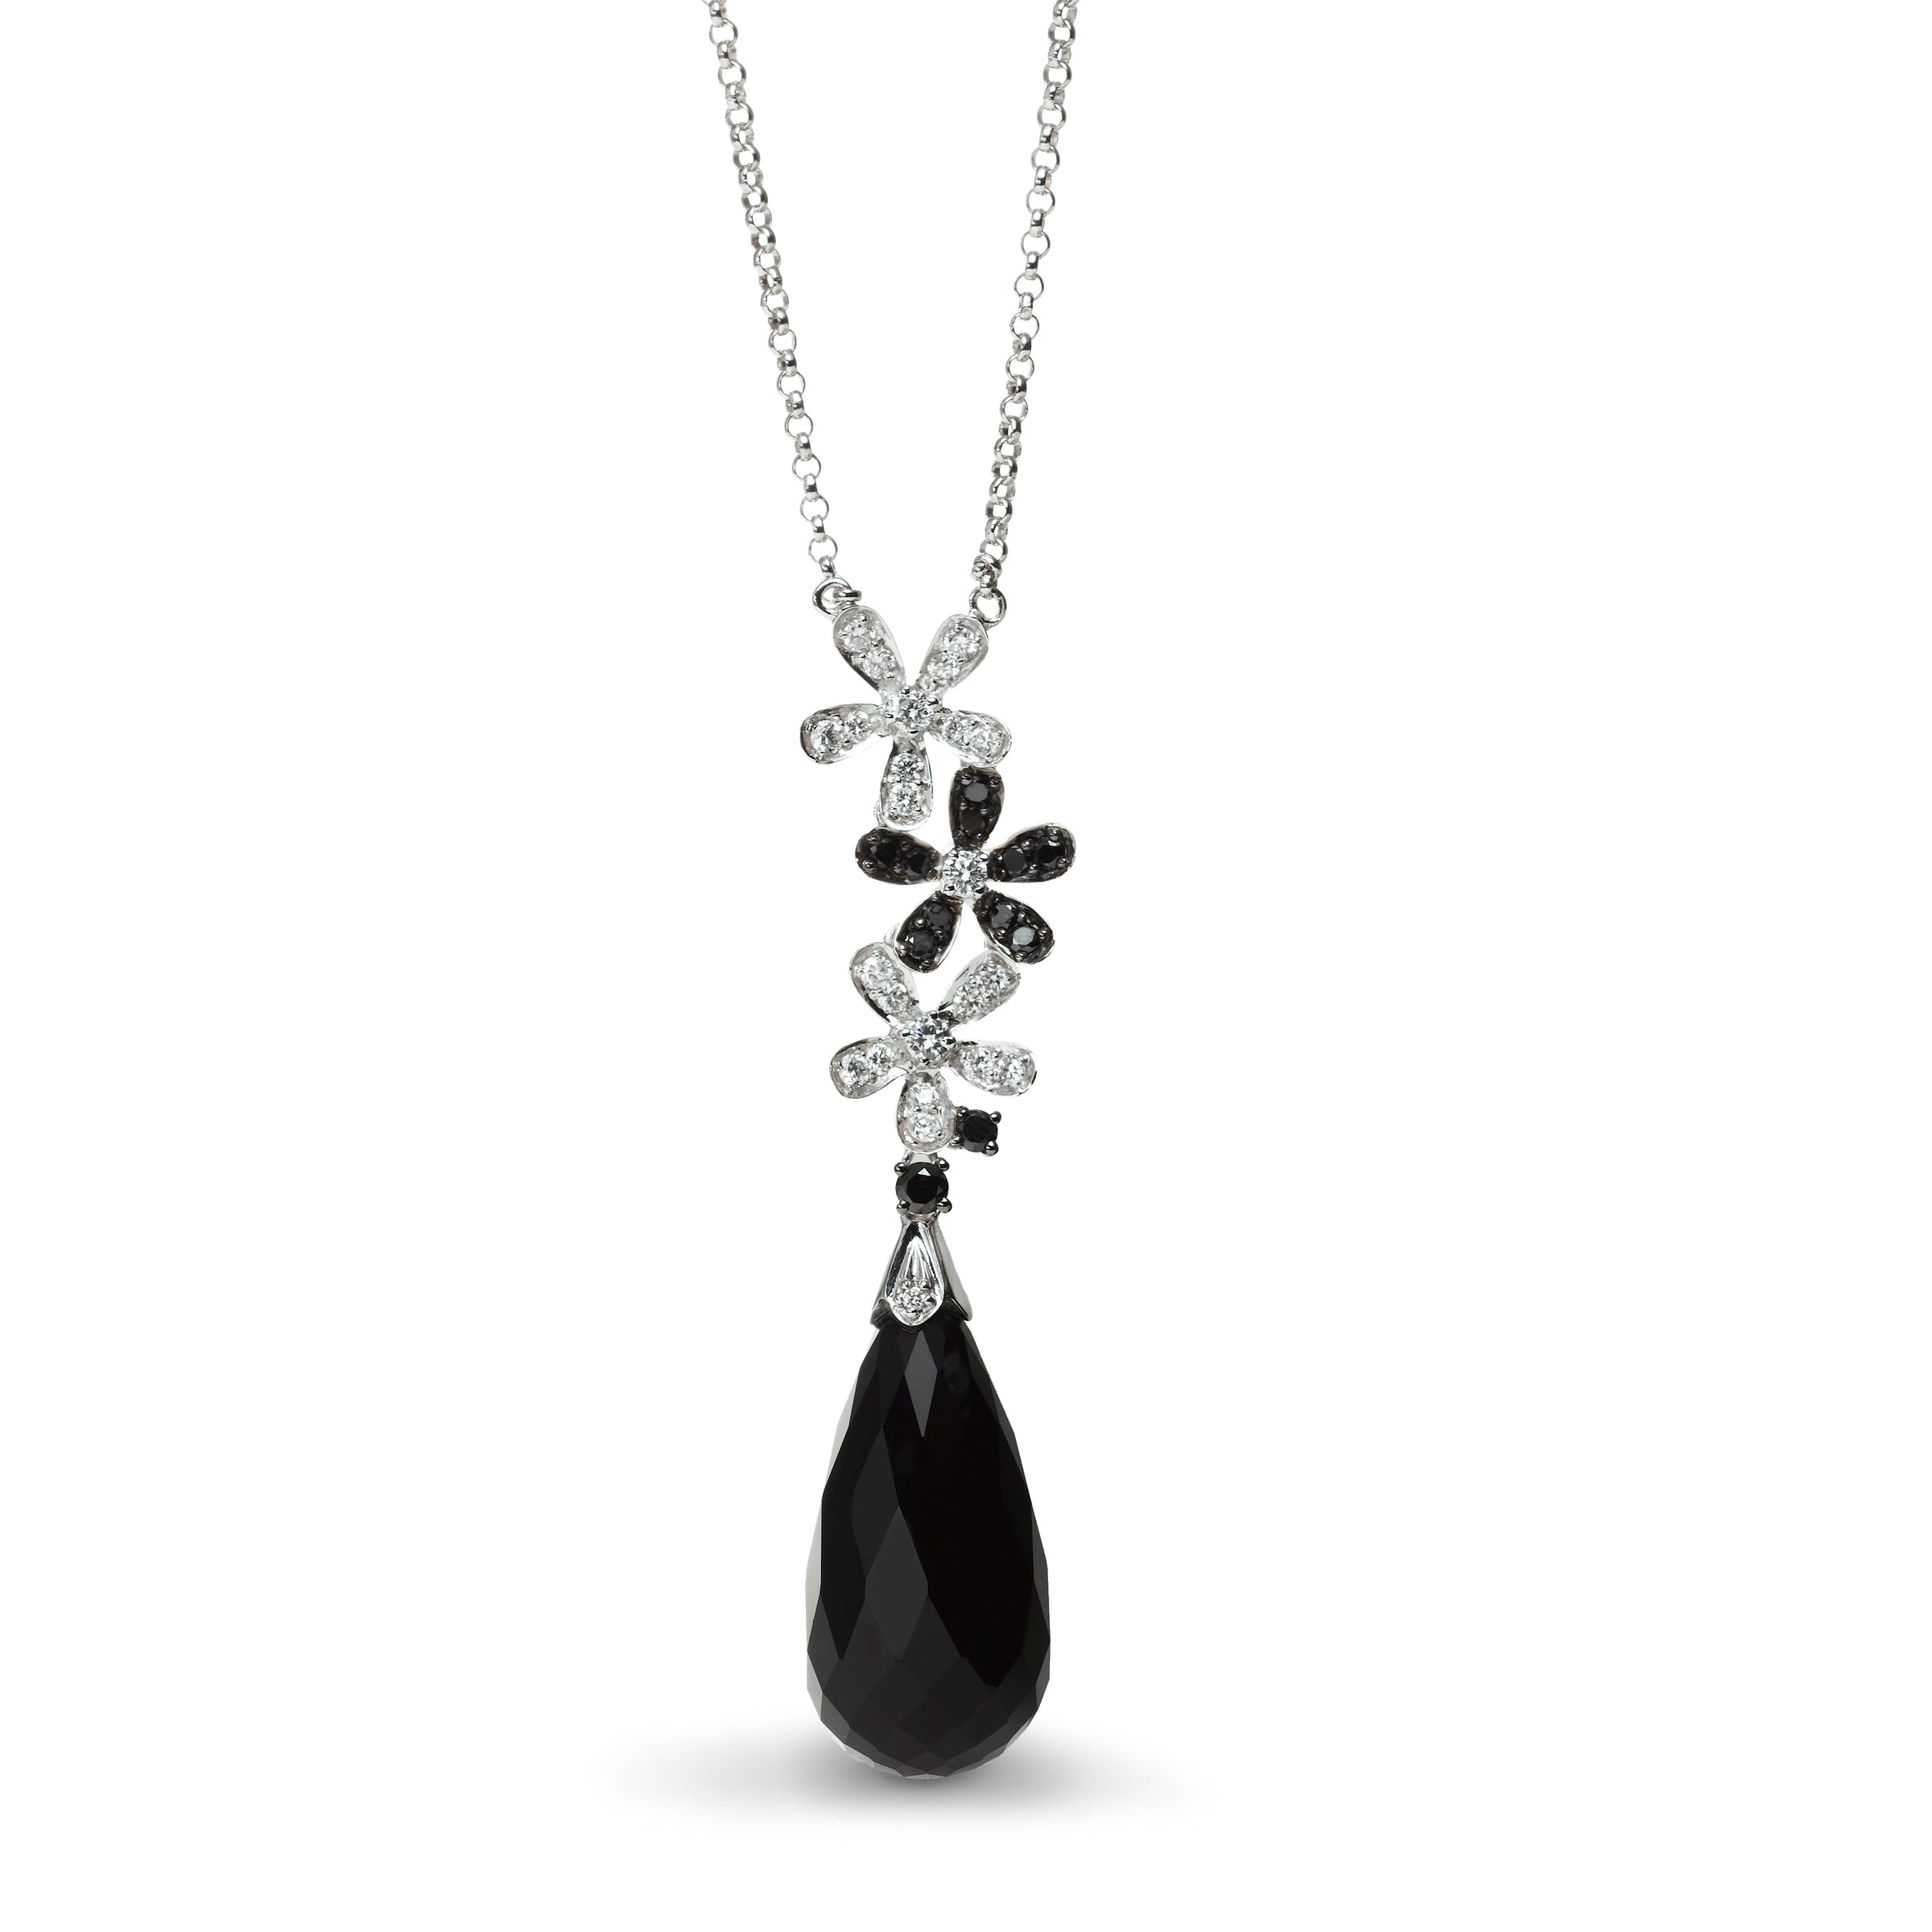 Black Agate and Diamond Necklace, 14K White Gold